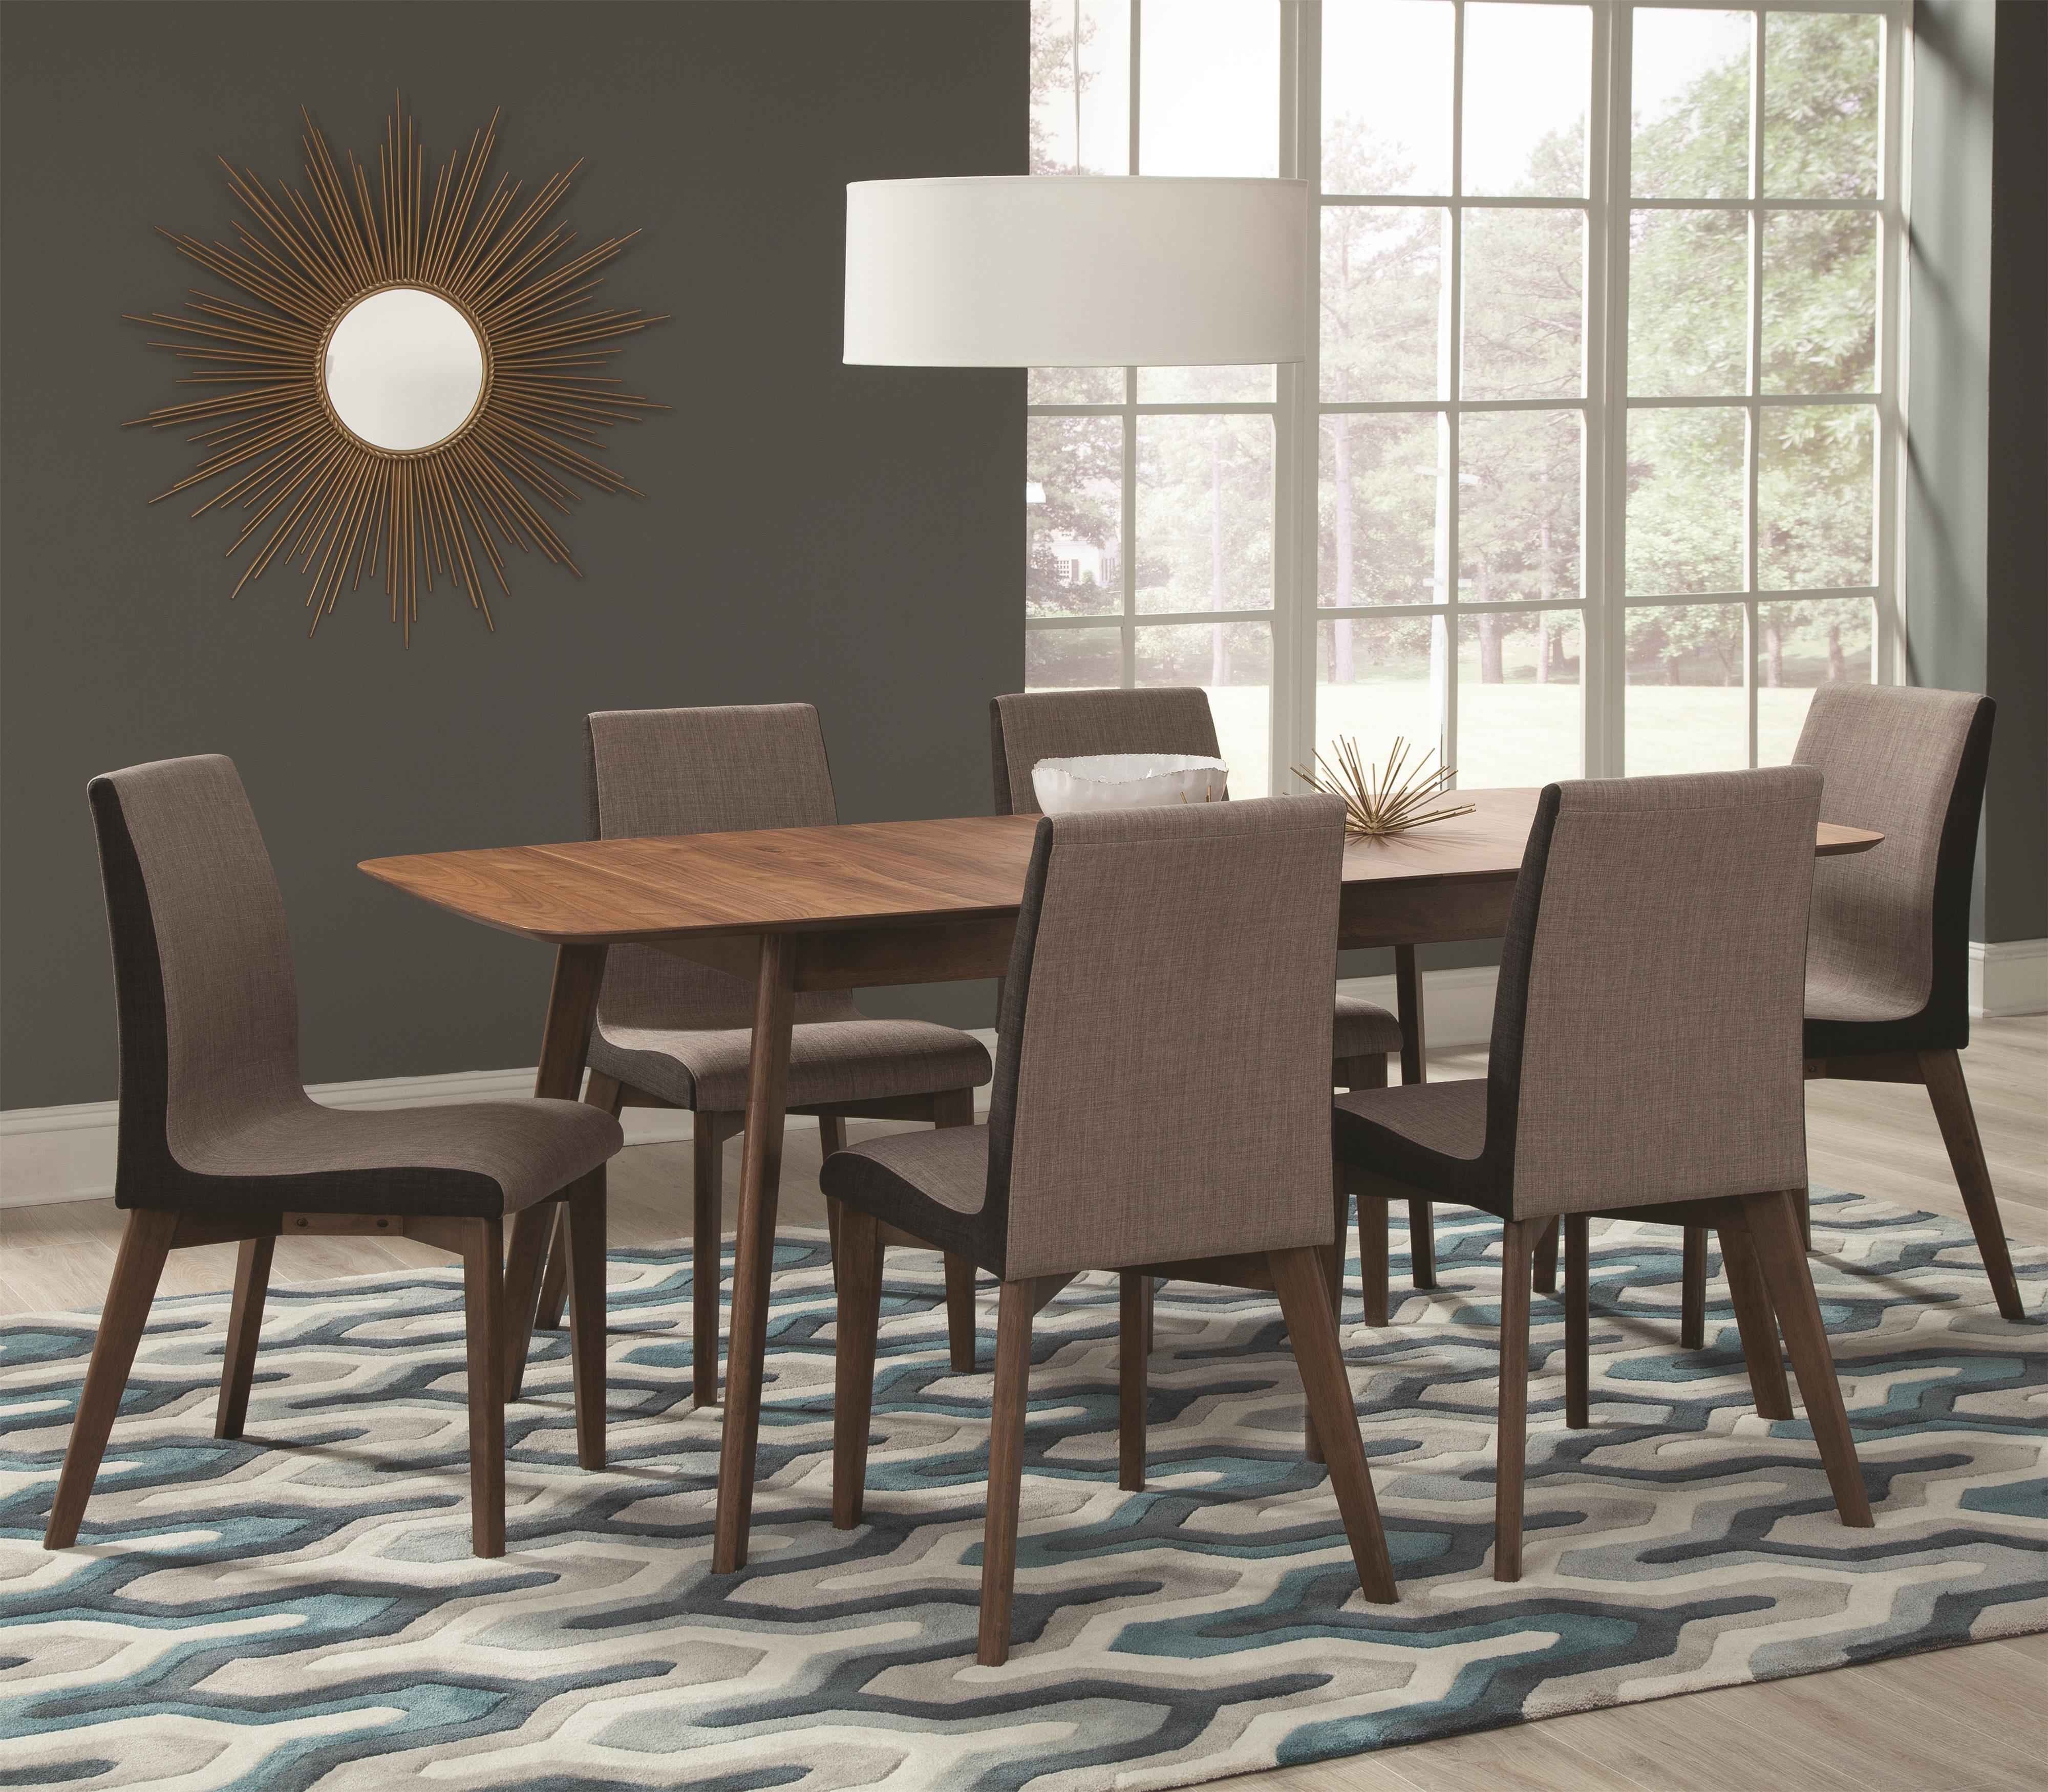 Redbridge 7 Piece Table & Chair Set by Coaster at Northeast Factory Direct